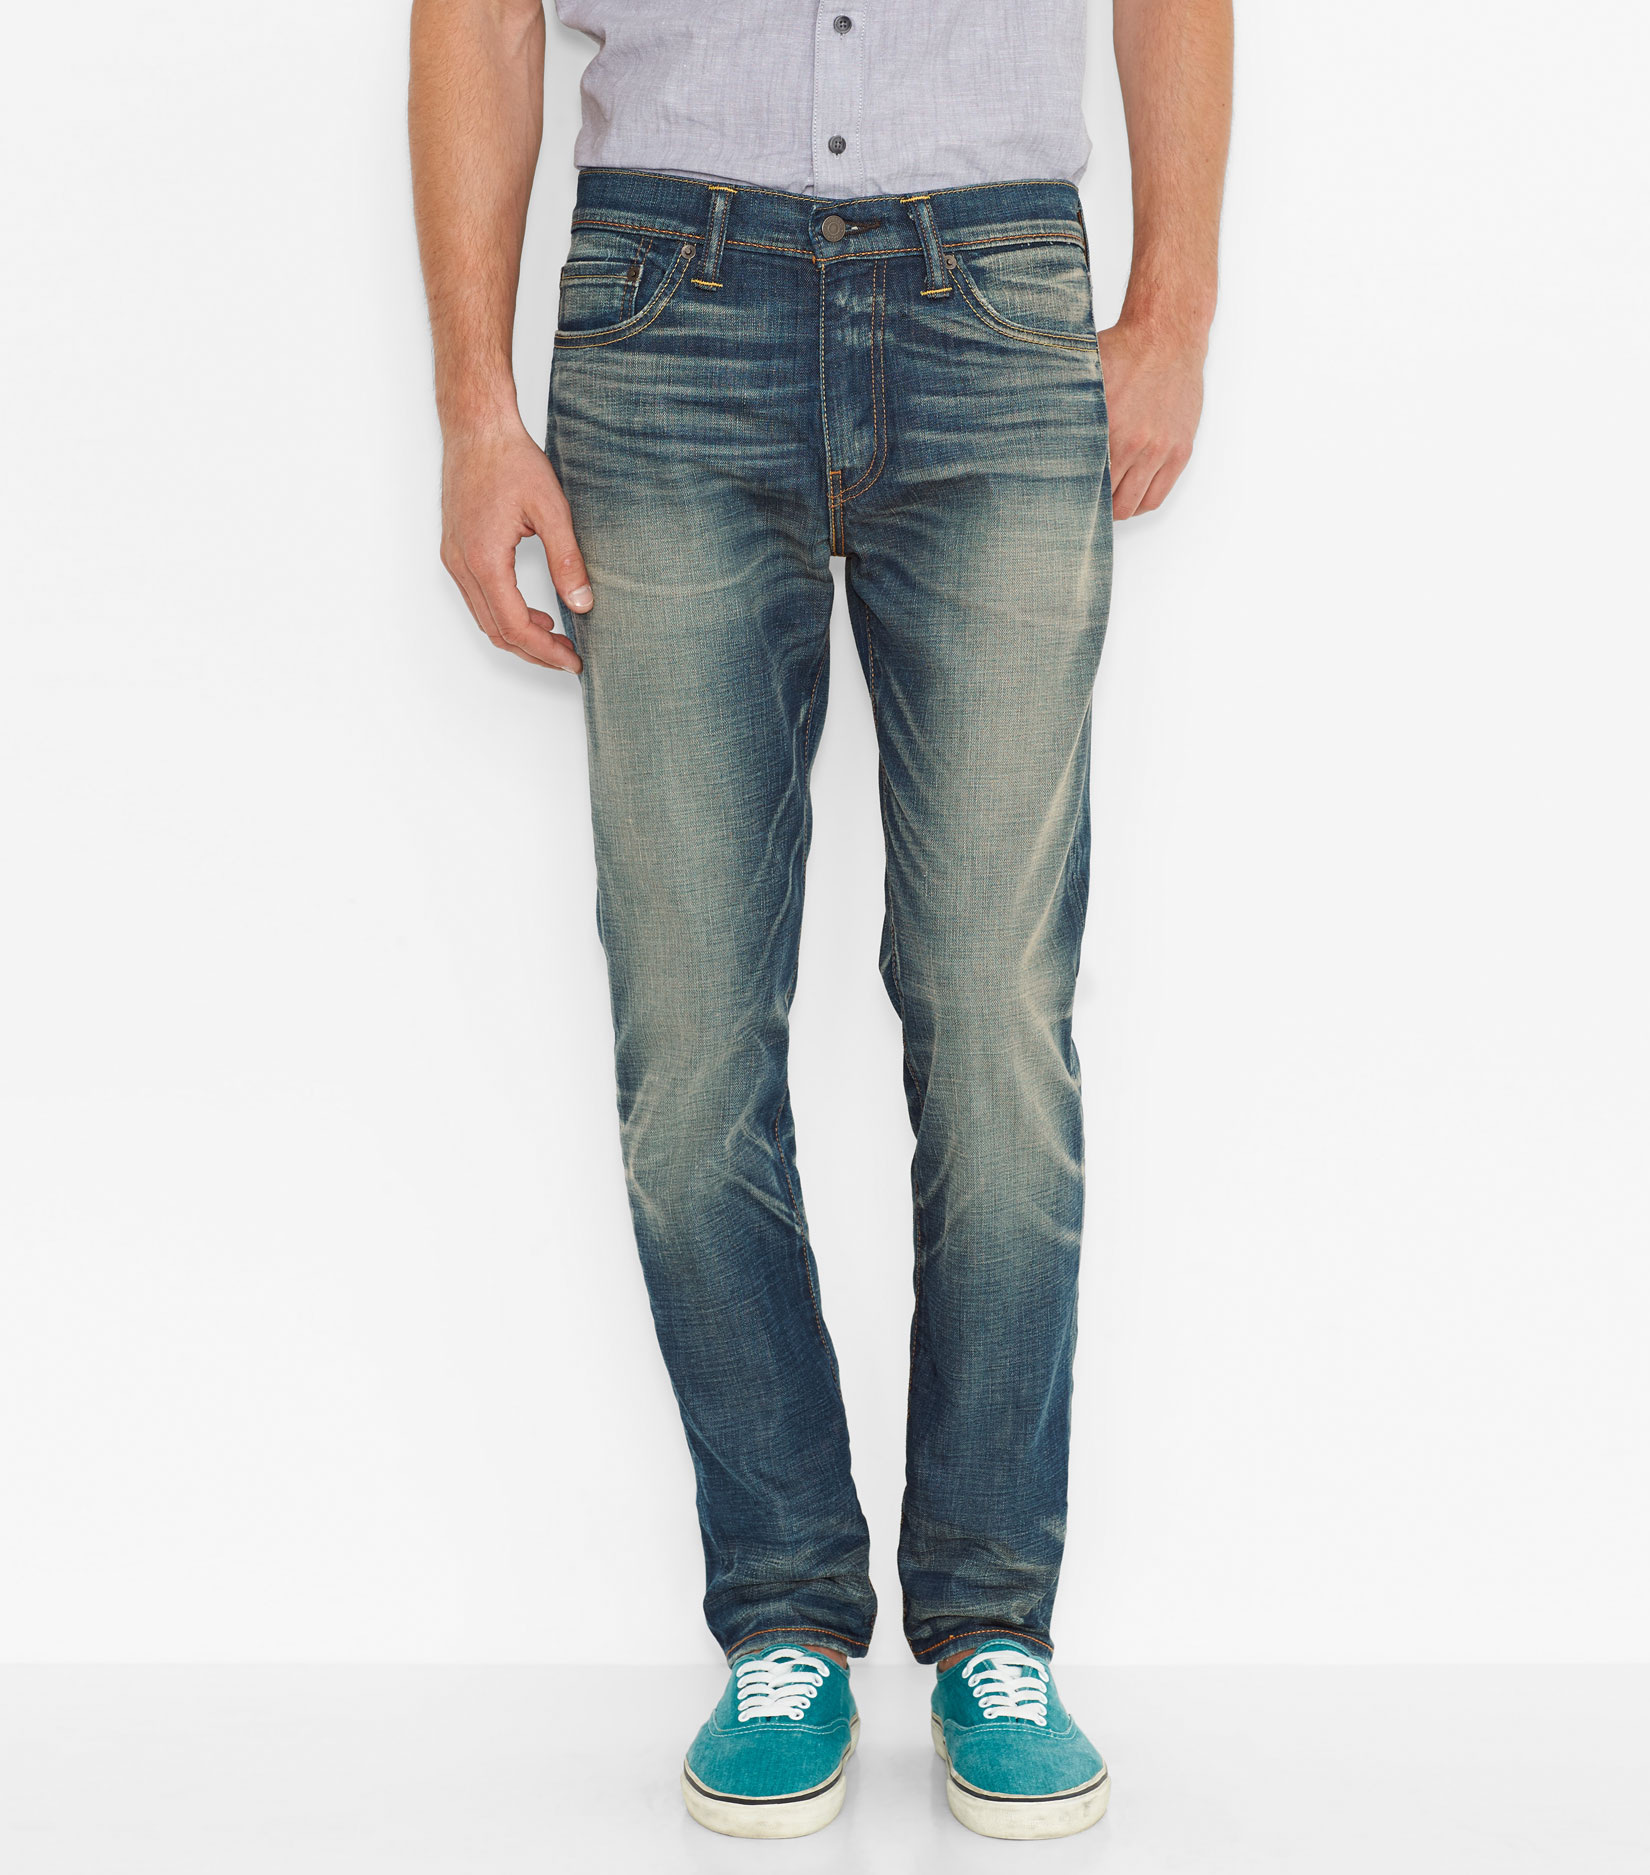 Slim fitting jeans | Sheknows.com